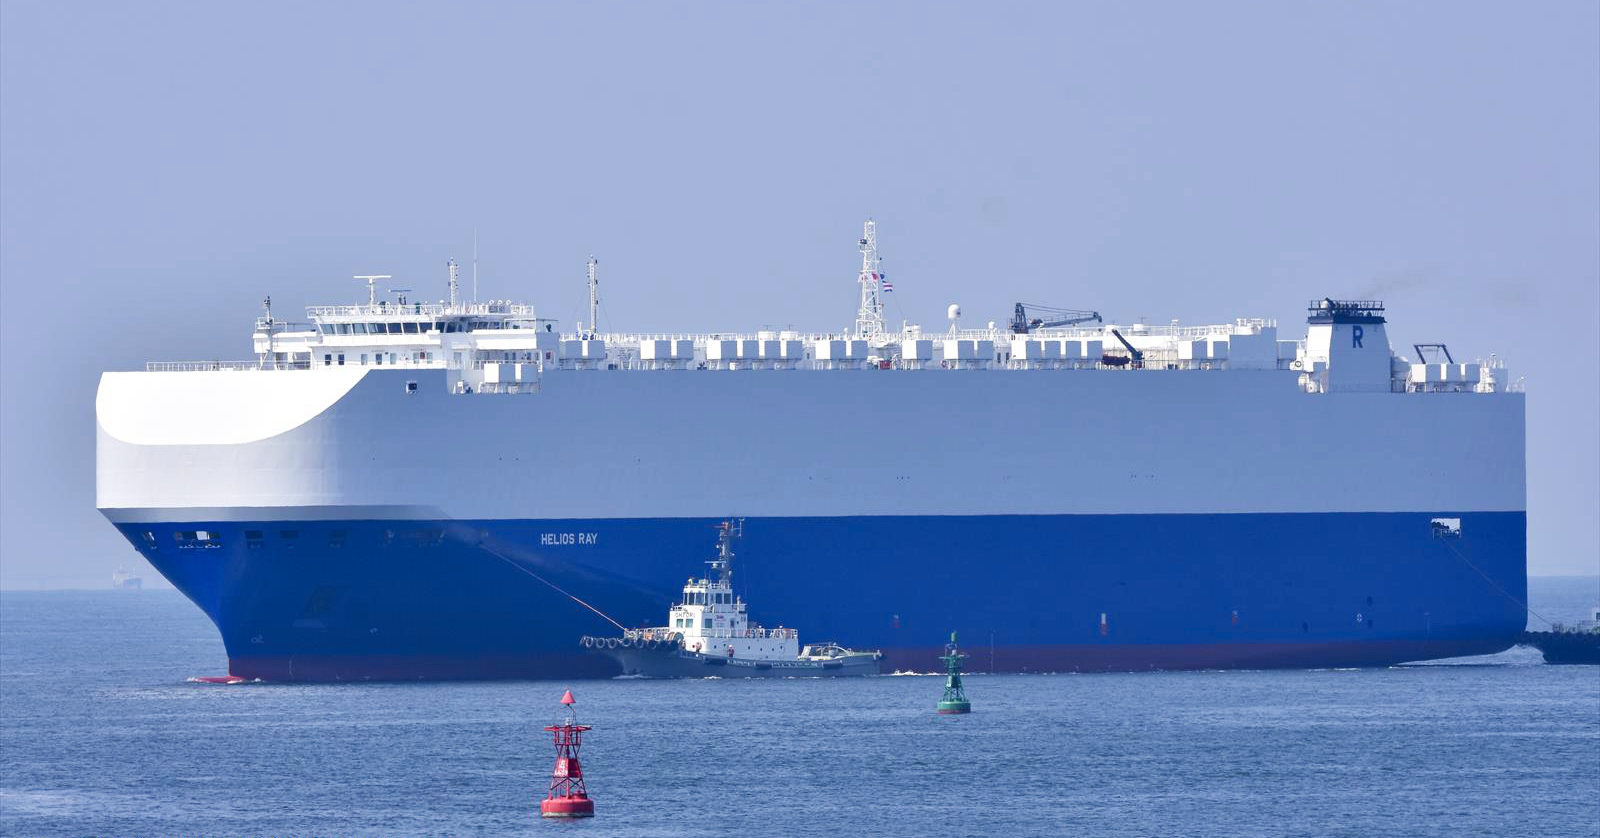 The vehicle cargo ship Helios Ray is seen at the Port of Chiba in Japan on Aug. 14.